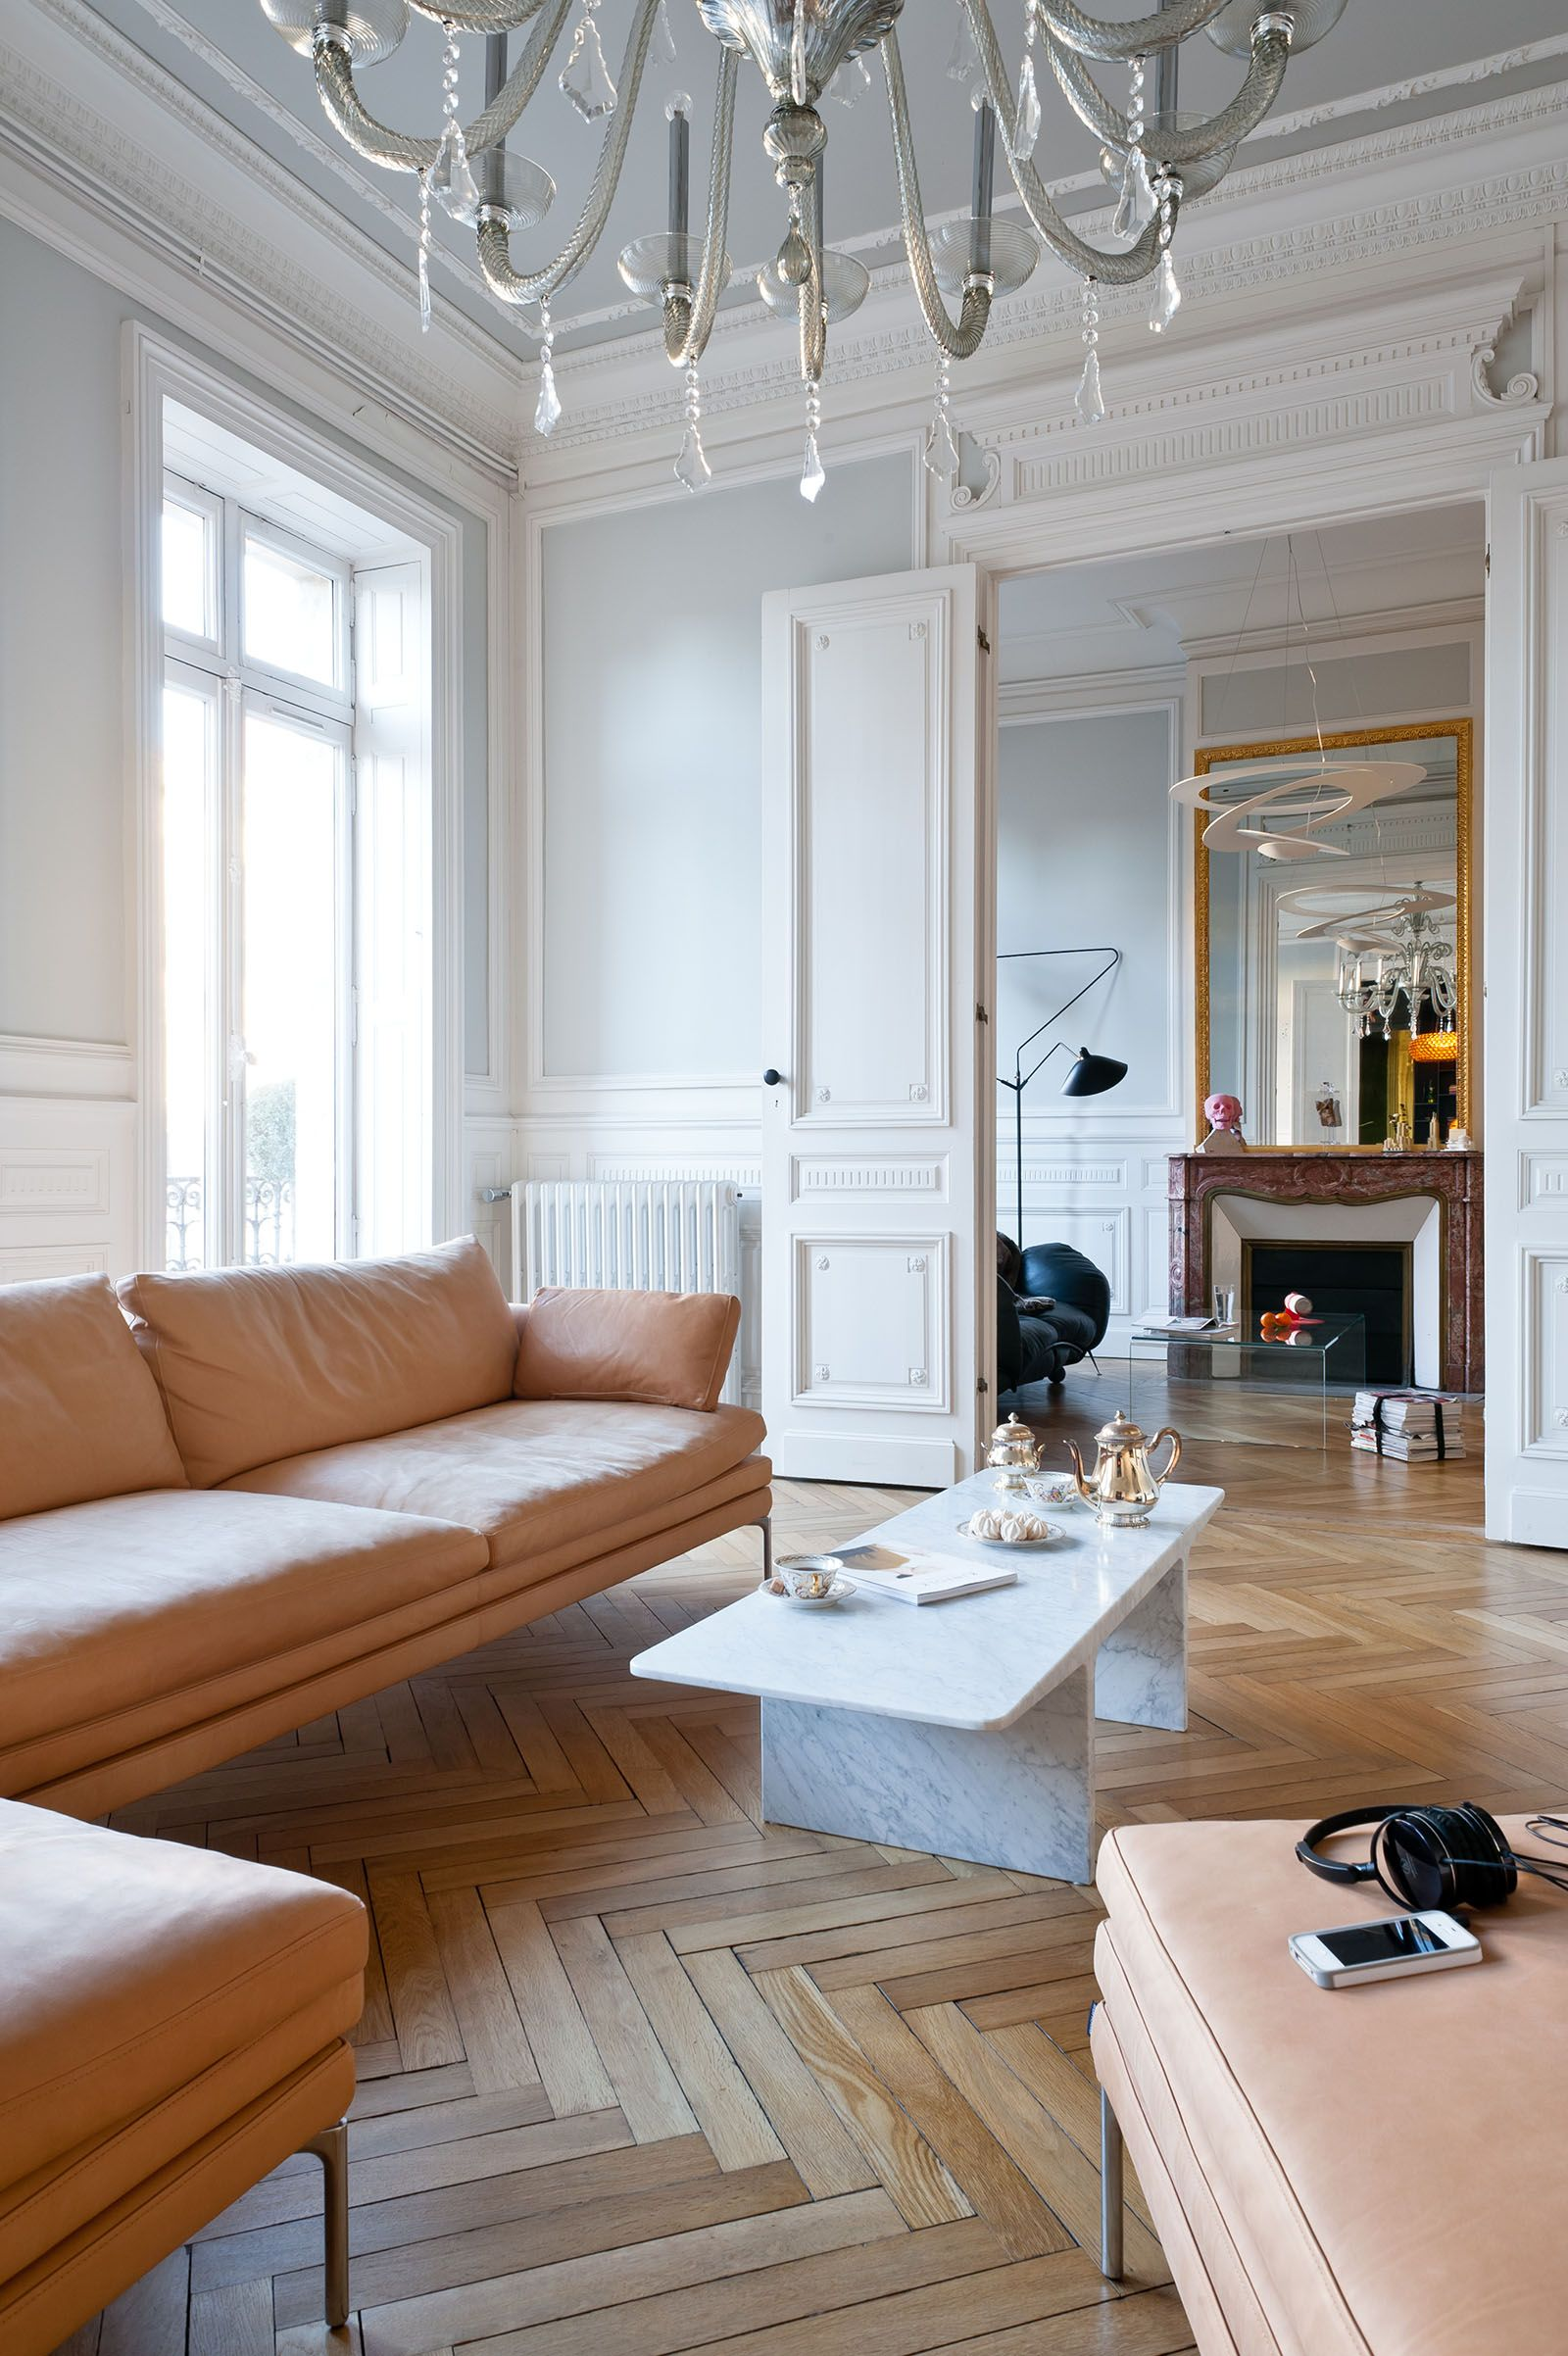 Salon avec ornements r am nag dans appartement haussmannien bordeaux par l 39 architecte d - Salon d interieur ...